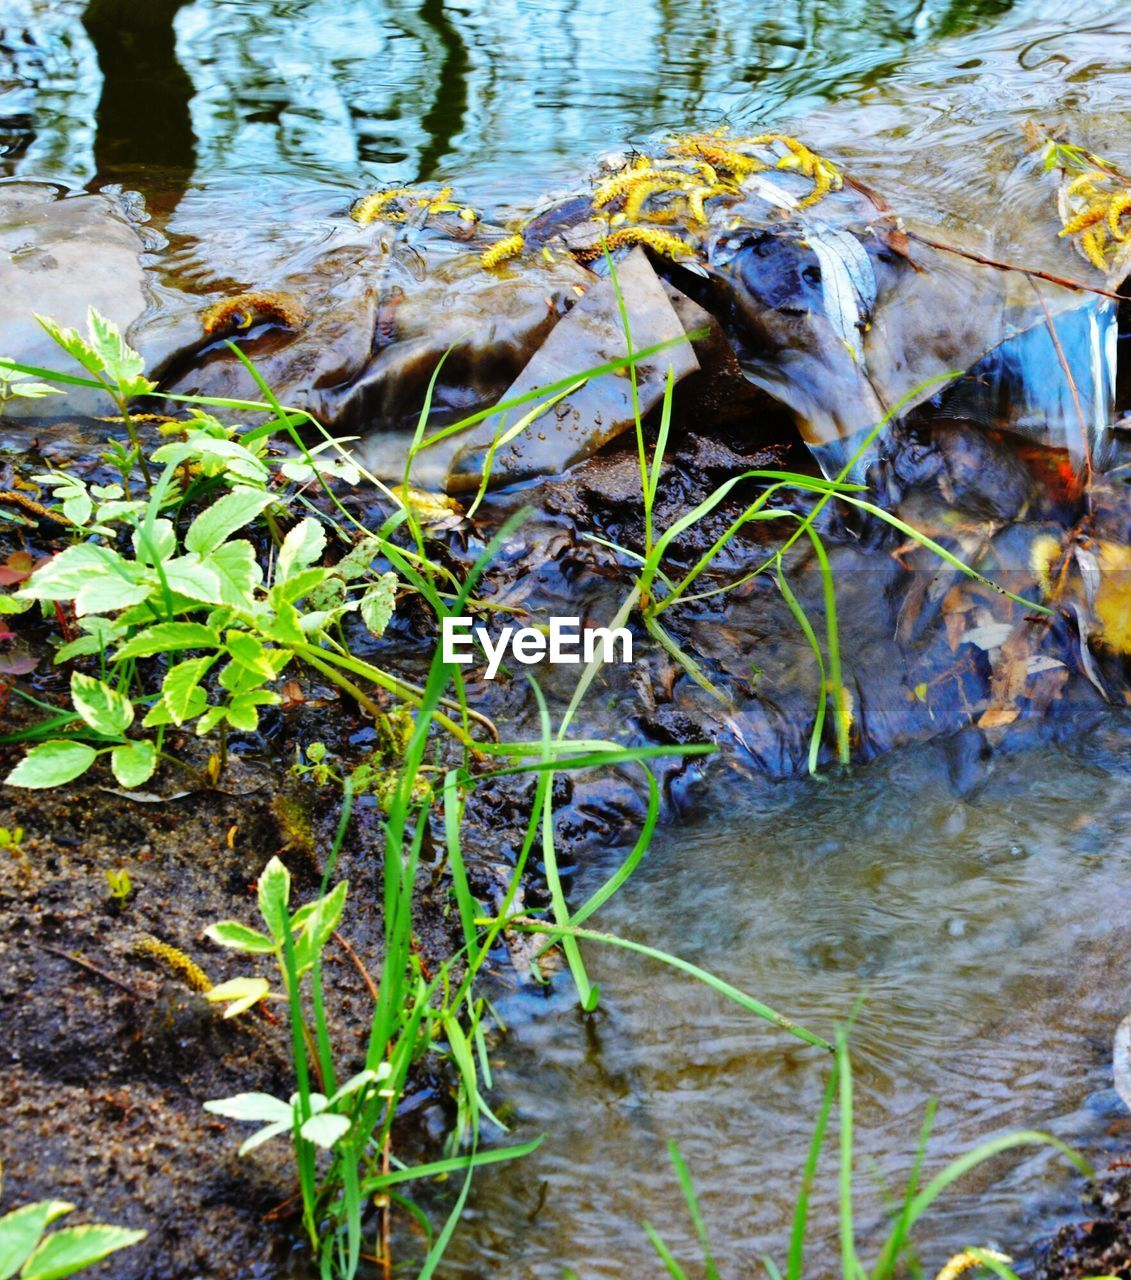 water, outdoors, leaf, river, nature, day, animal themes, no people, one animal, animals in the wild, reptile, close-up, beauty in nature, mammal